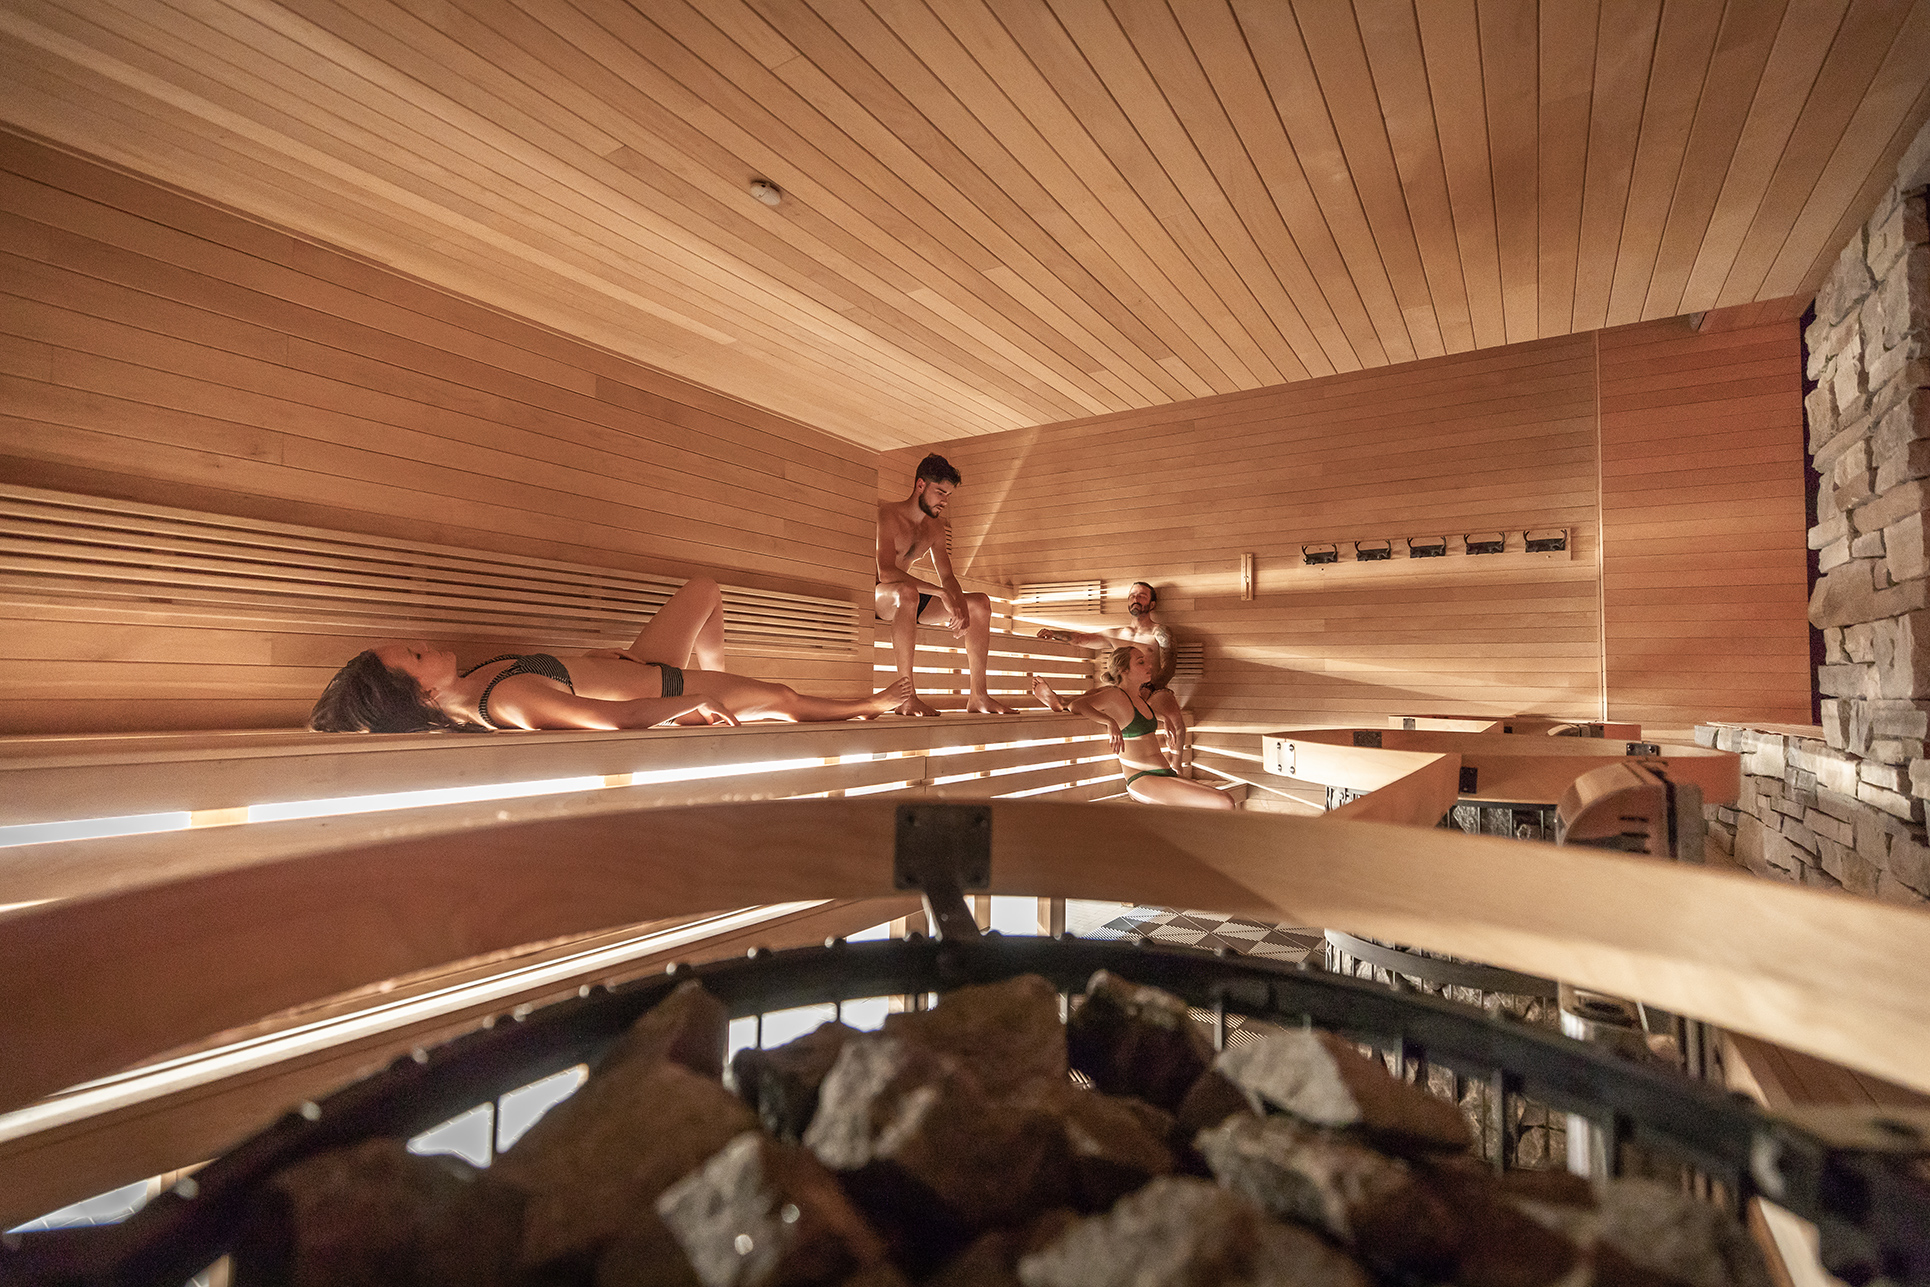 Four guests enjoying a warm Finnish dry Sauna at Scandinave Spa Tremblant.